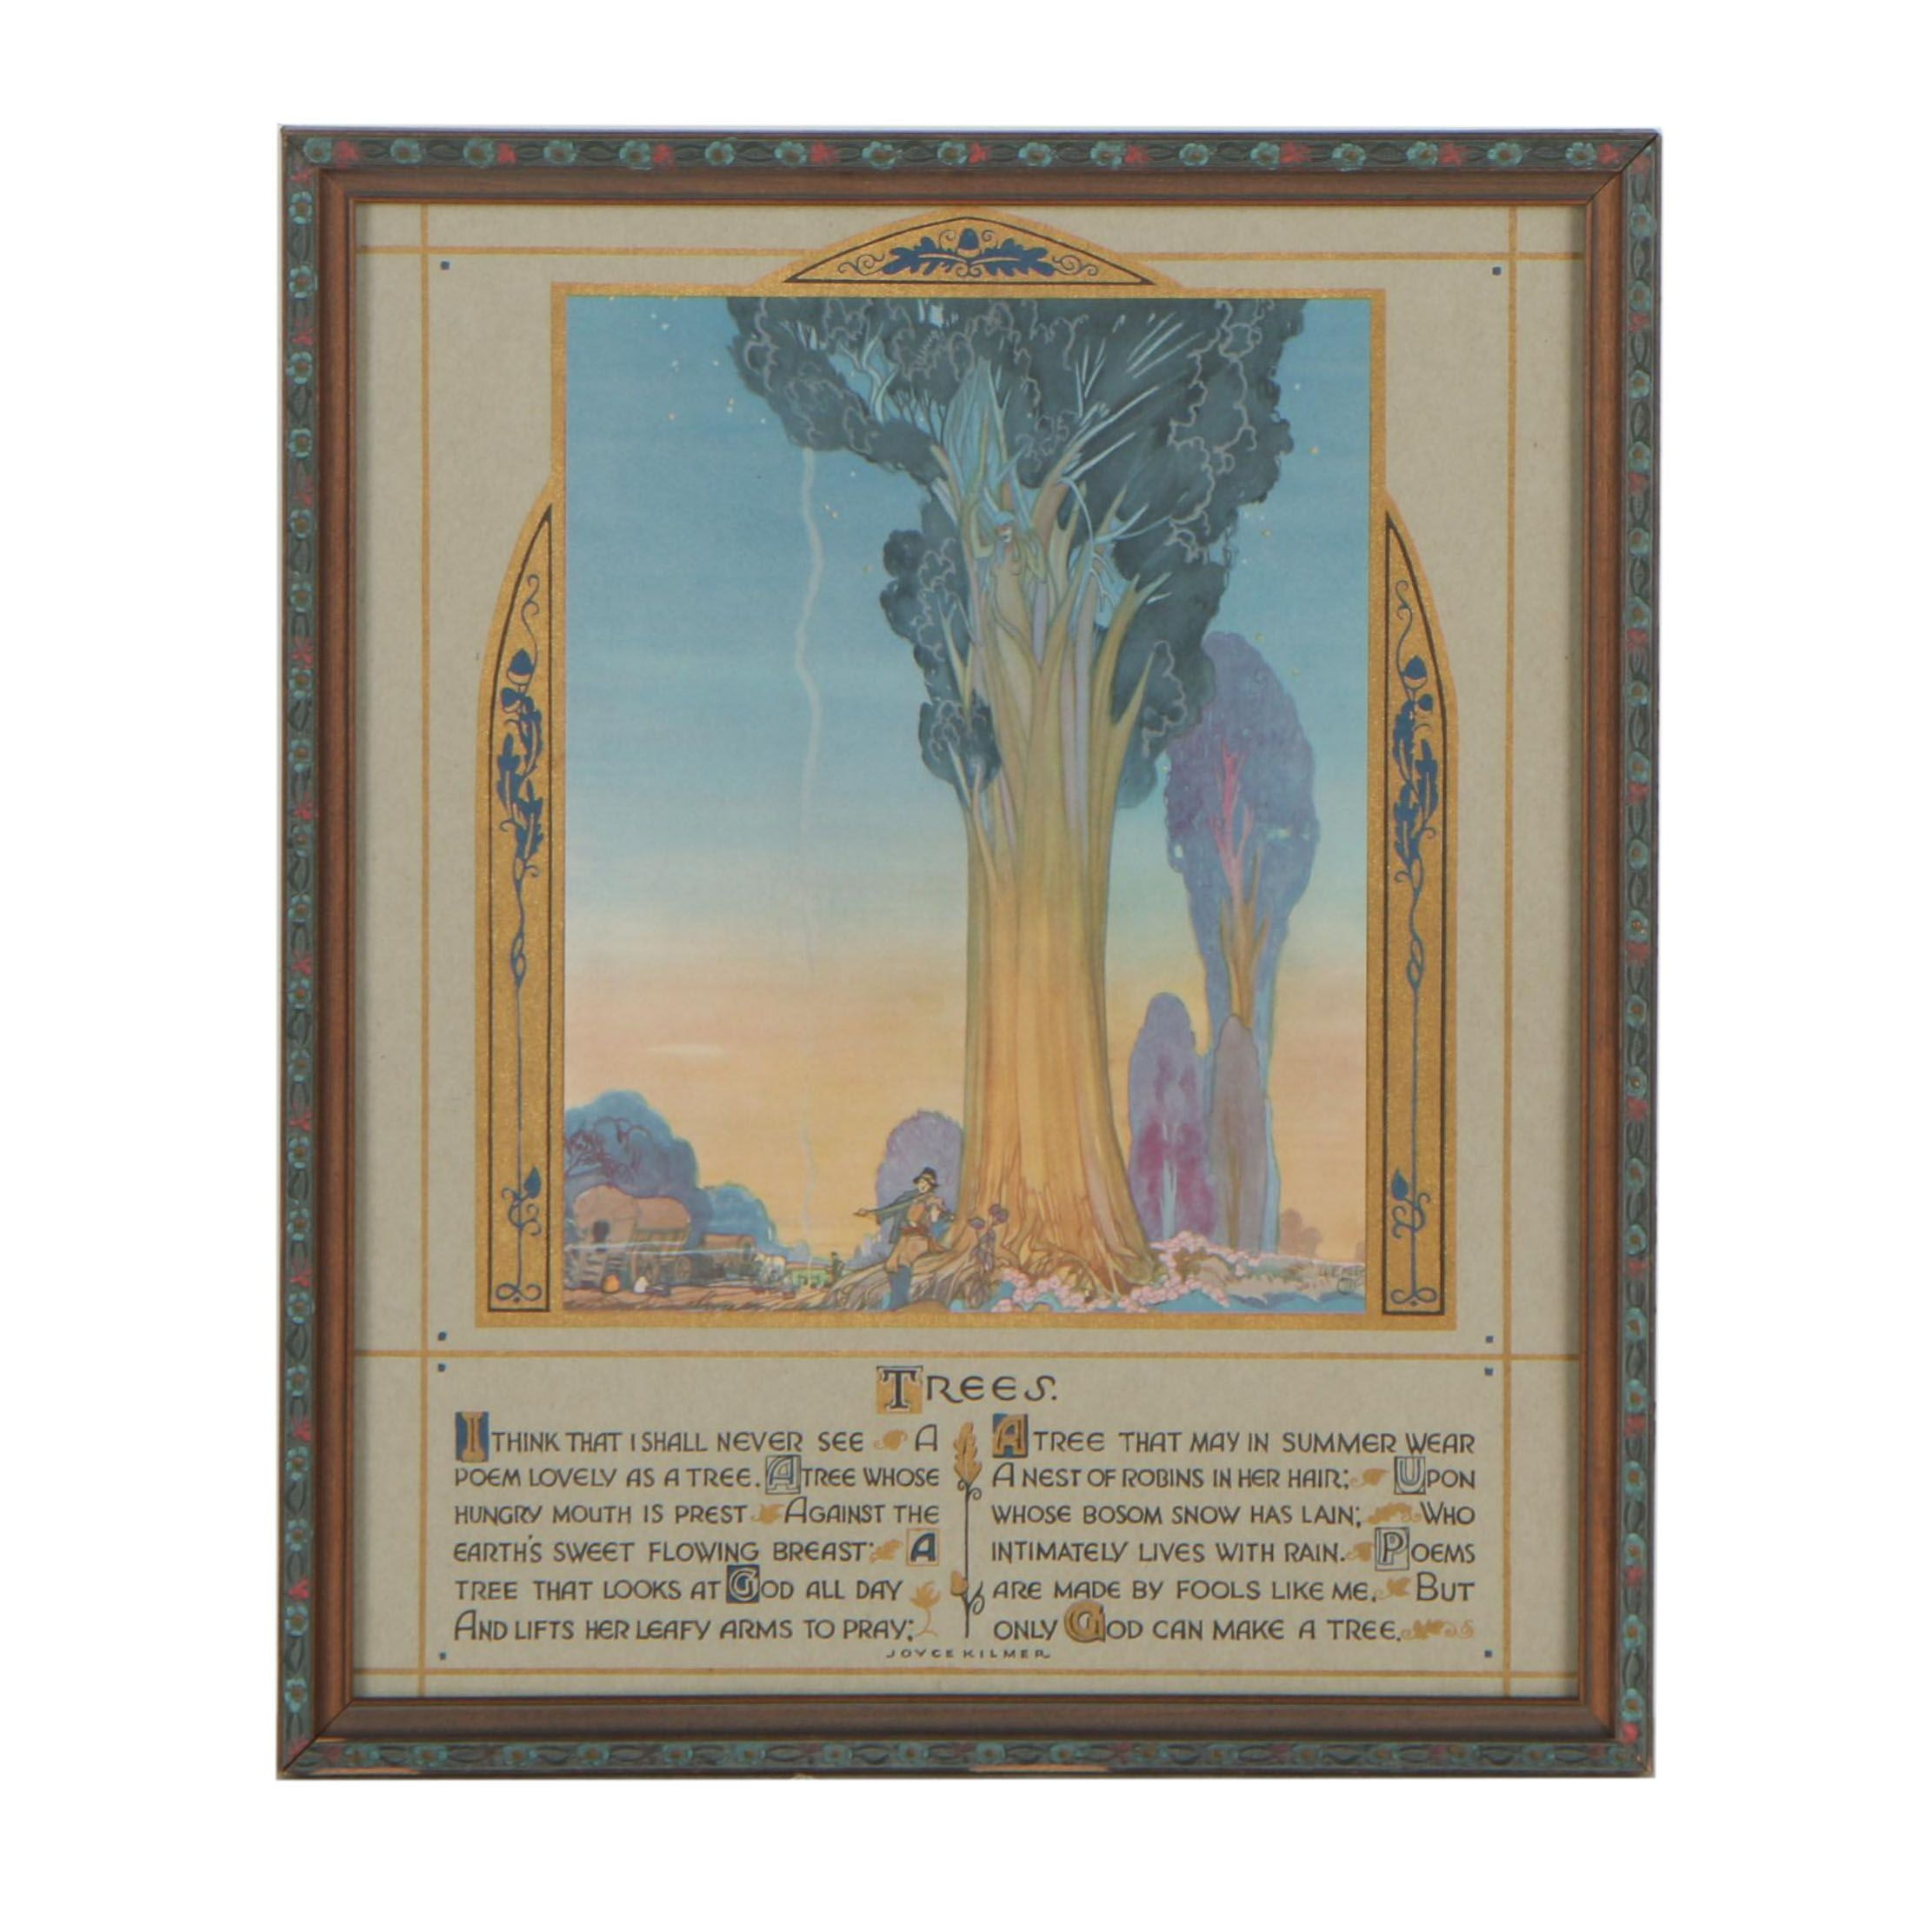 """Art Deco Lithograph Joyce Kilmer Poem """"Trees"""" with Artwork after Lee Mero, 1914"""